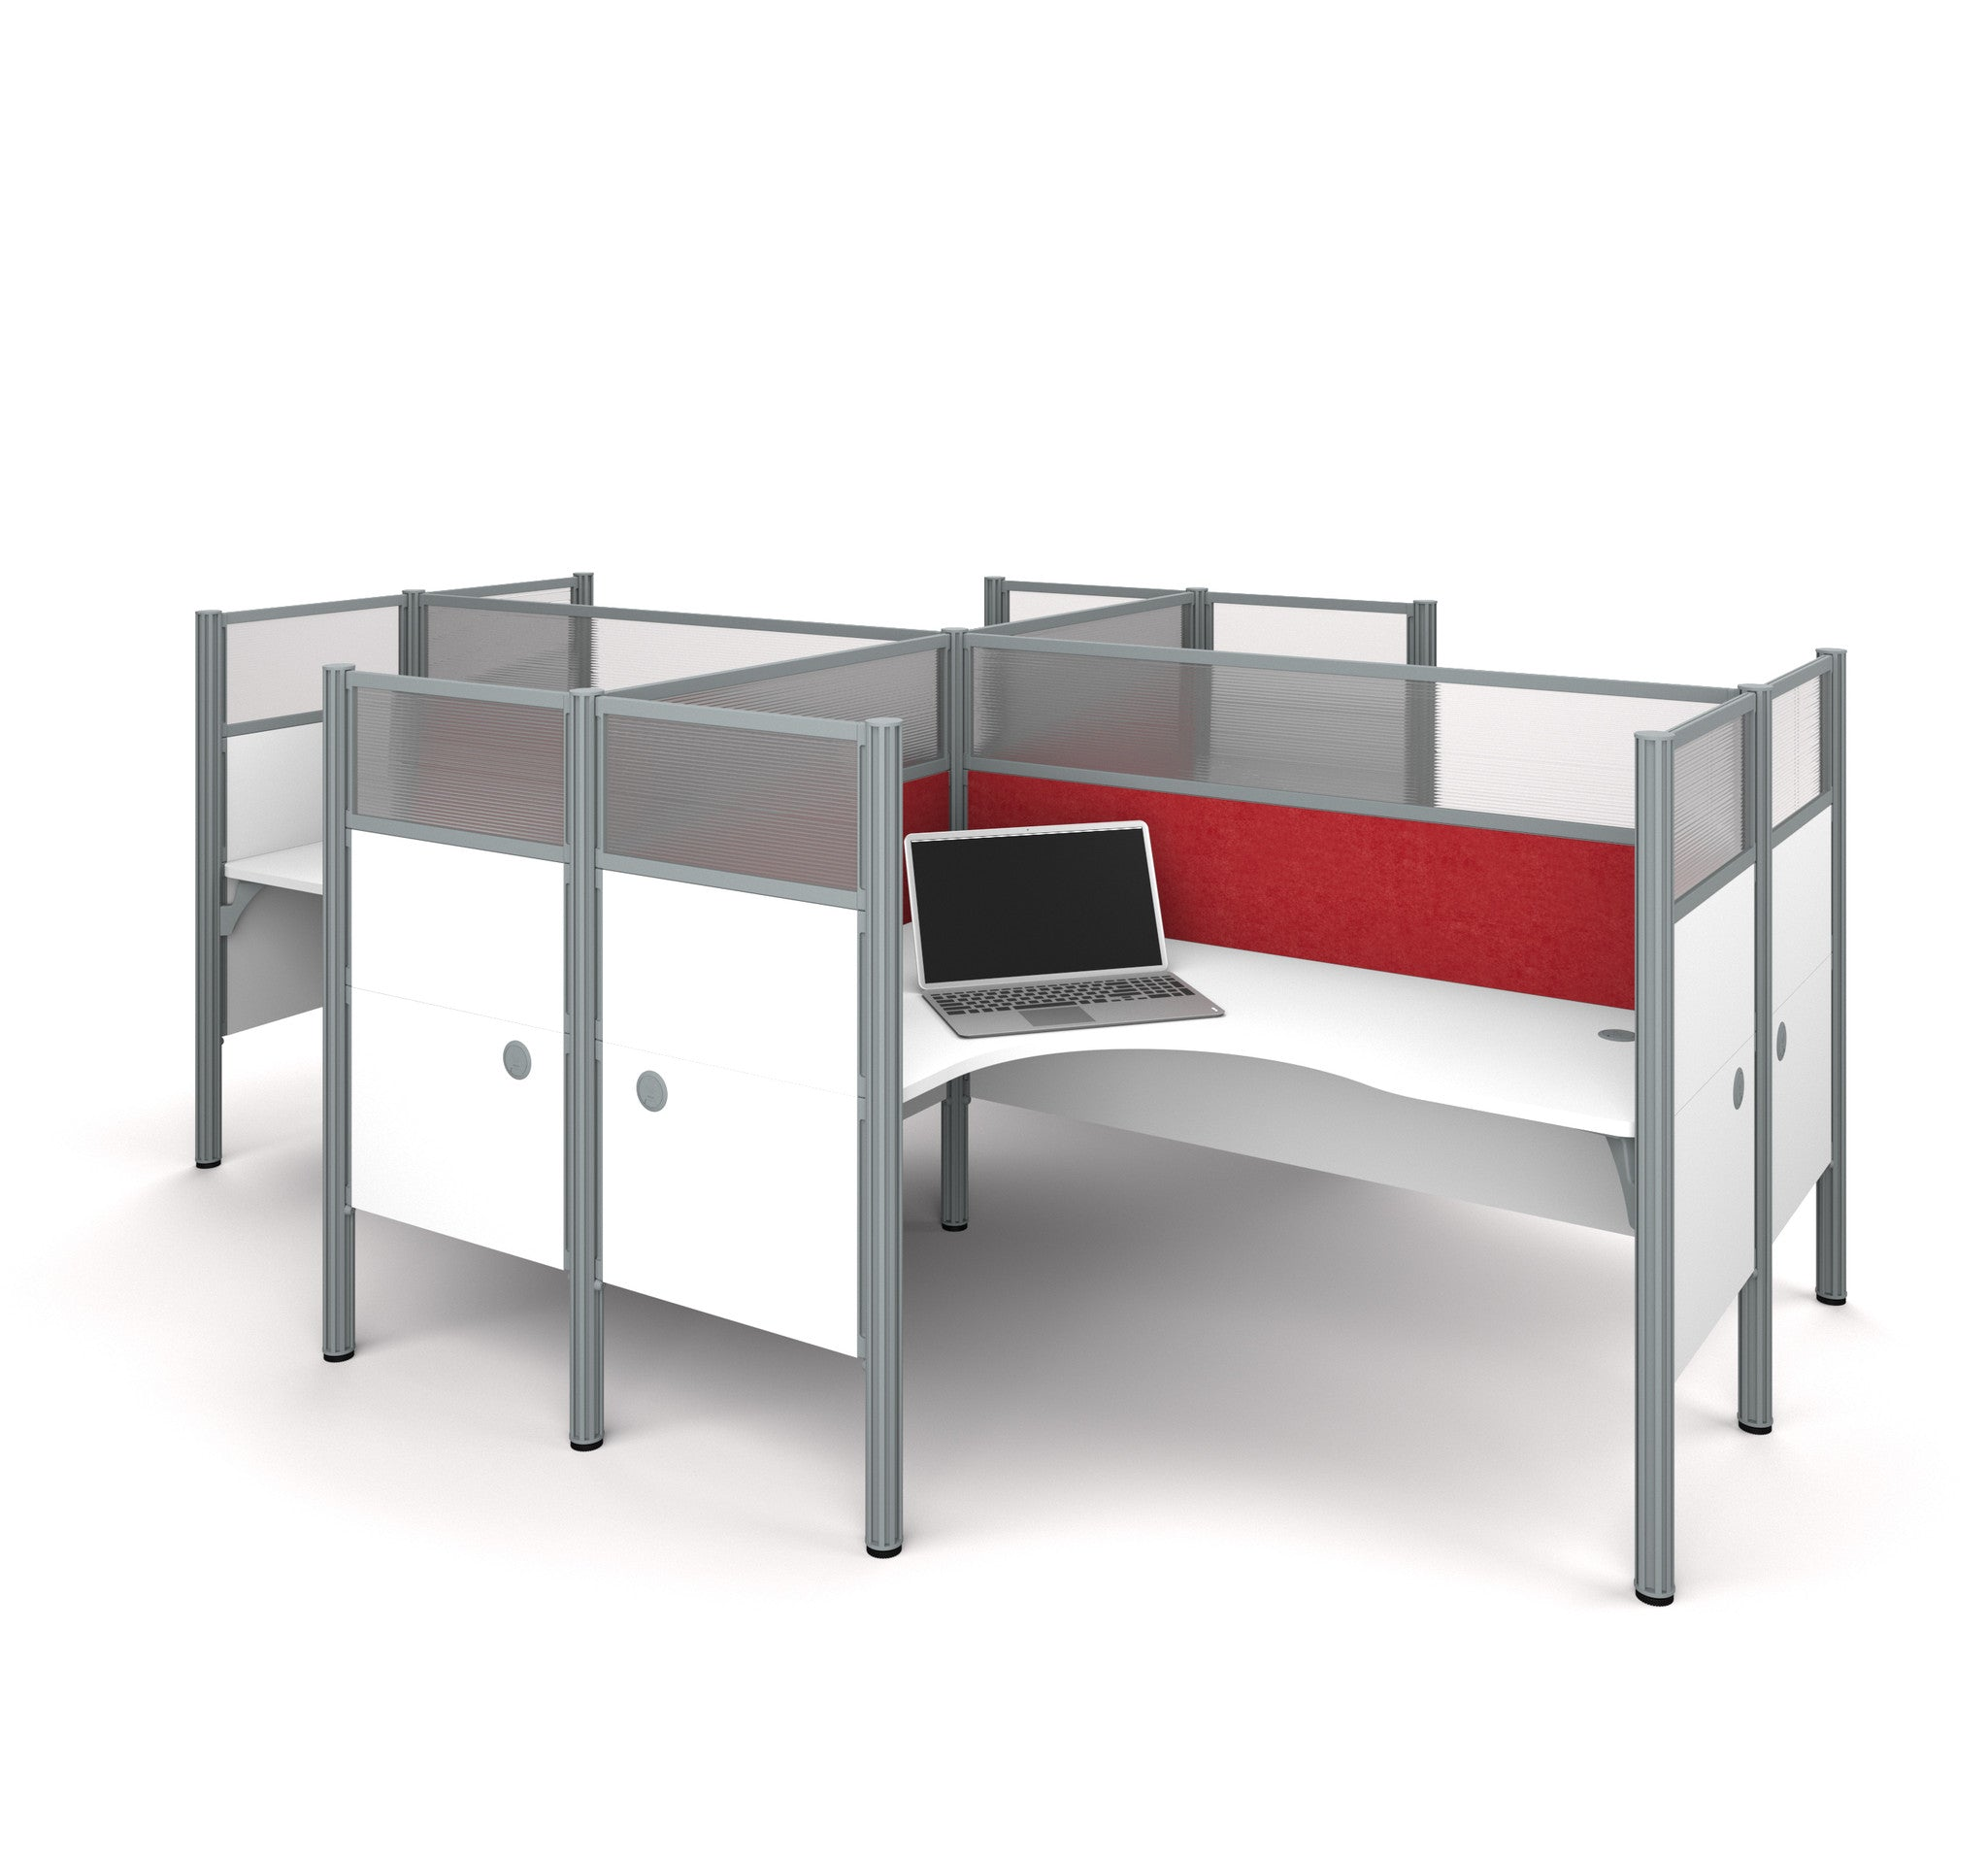 Pro-Biz White 4-Way Workstation with Ultimate Privacy & Red Tack Boards